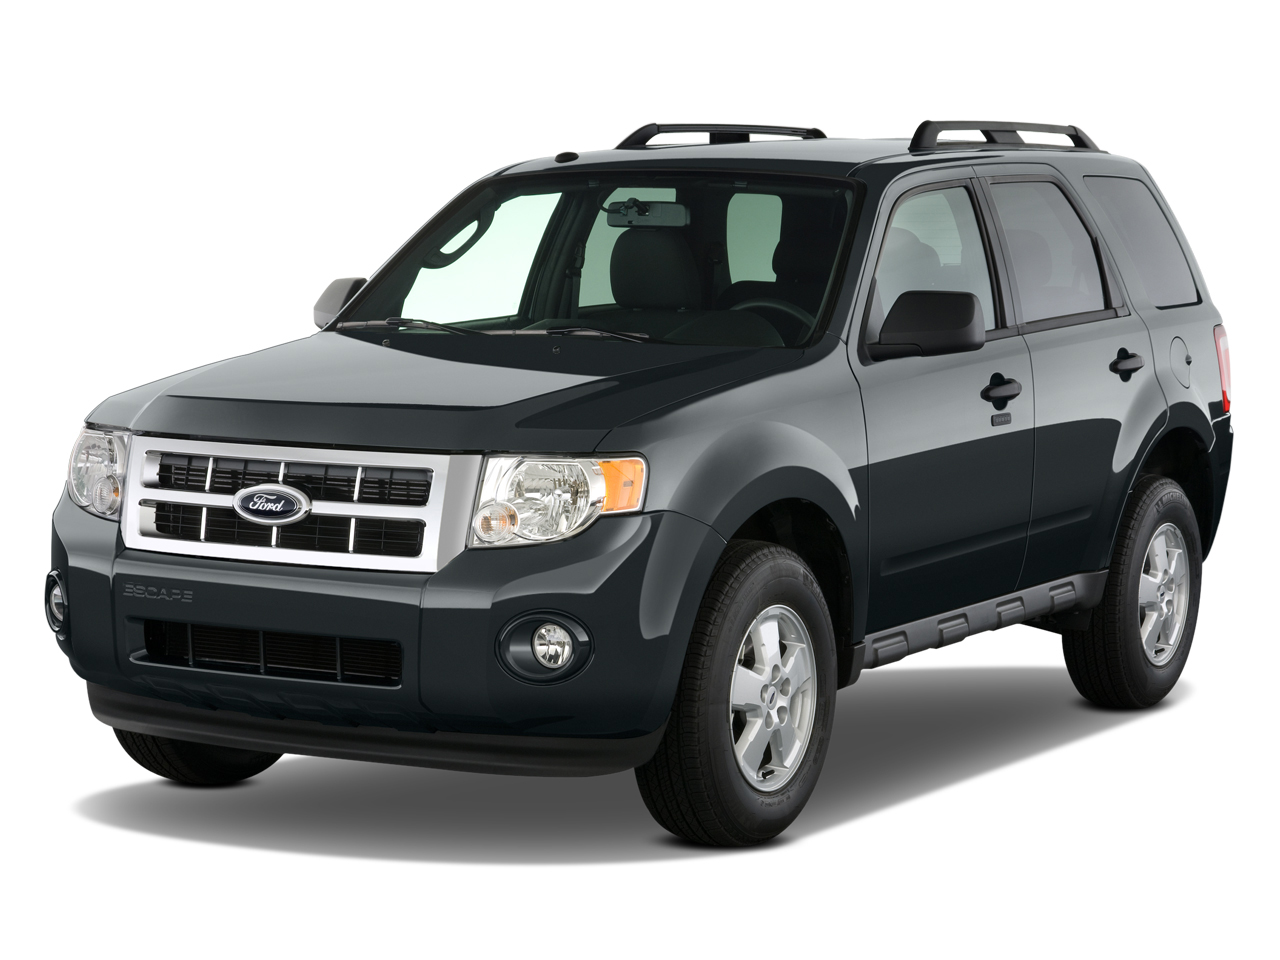 2010 Ford Escape XLT picture